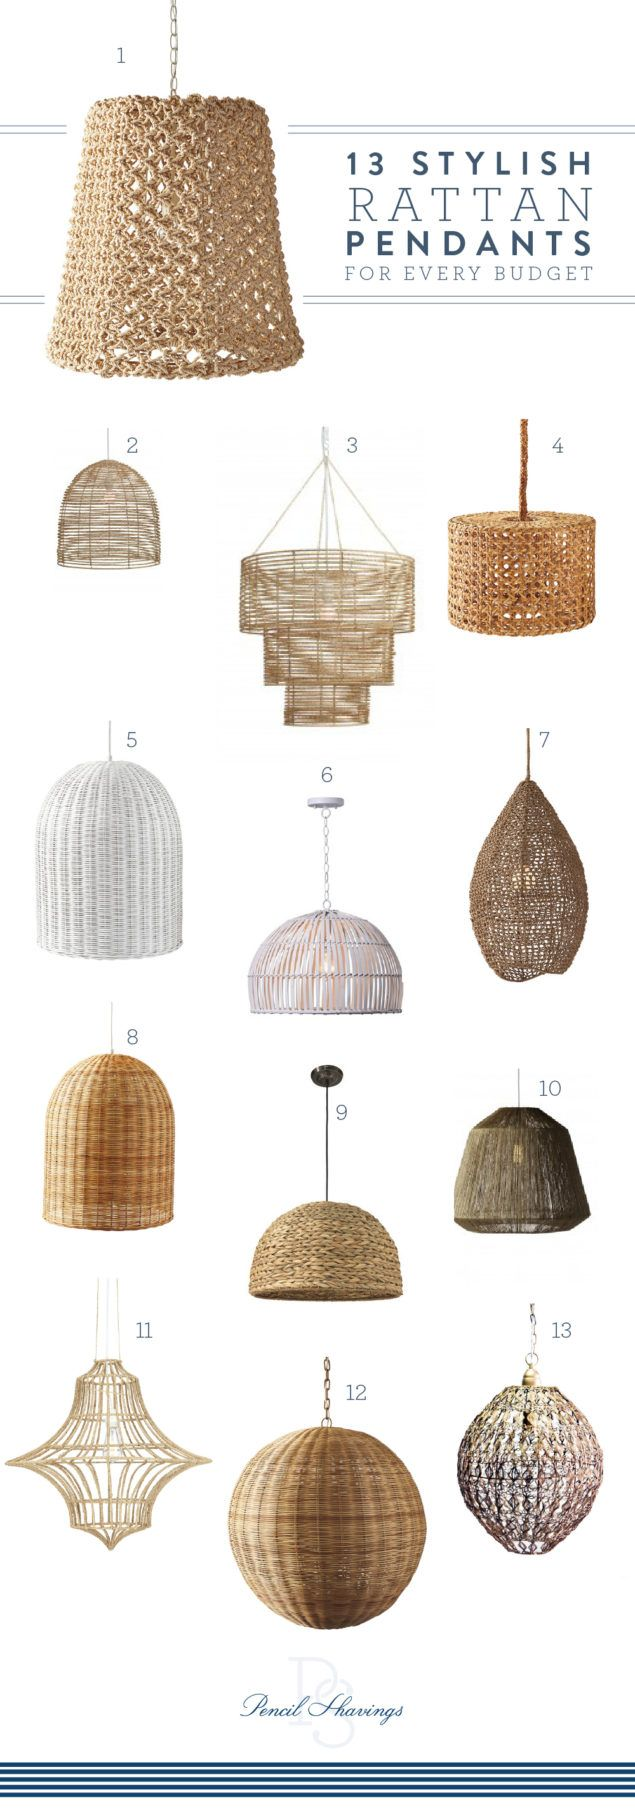 Are you noticing the rattan trend happening everywhere lately? I'm particularly keen on rattan pendant lights – there's something so beachy and fresh about them, and the bell shape feels crisply contemporary with a nod to natural fibers. I've seen them in pairs over kitchen islands, or solo over dining tables. Get the whole look including my favorites at every budget at www.pencilshavingsstudio.com #budgetlighting #kitchenlighting #naturallighting #rattan #pendantlighting #chandeliers